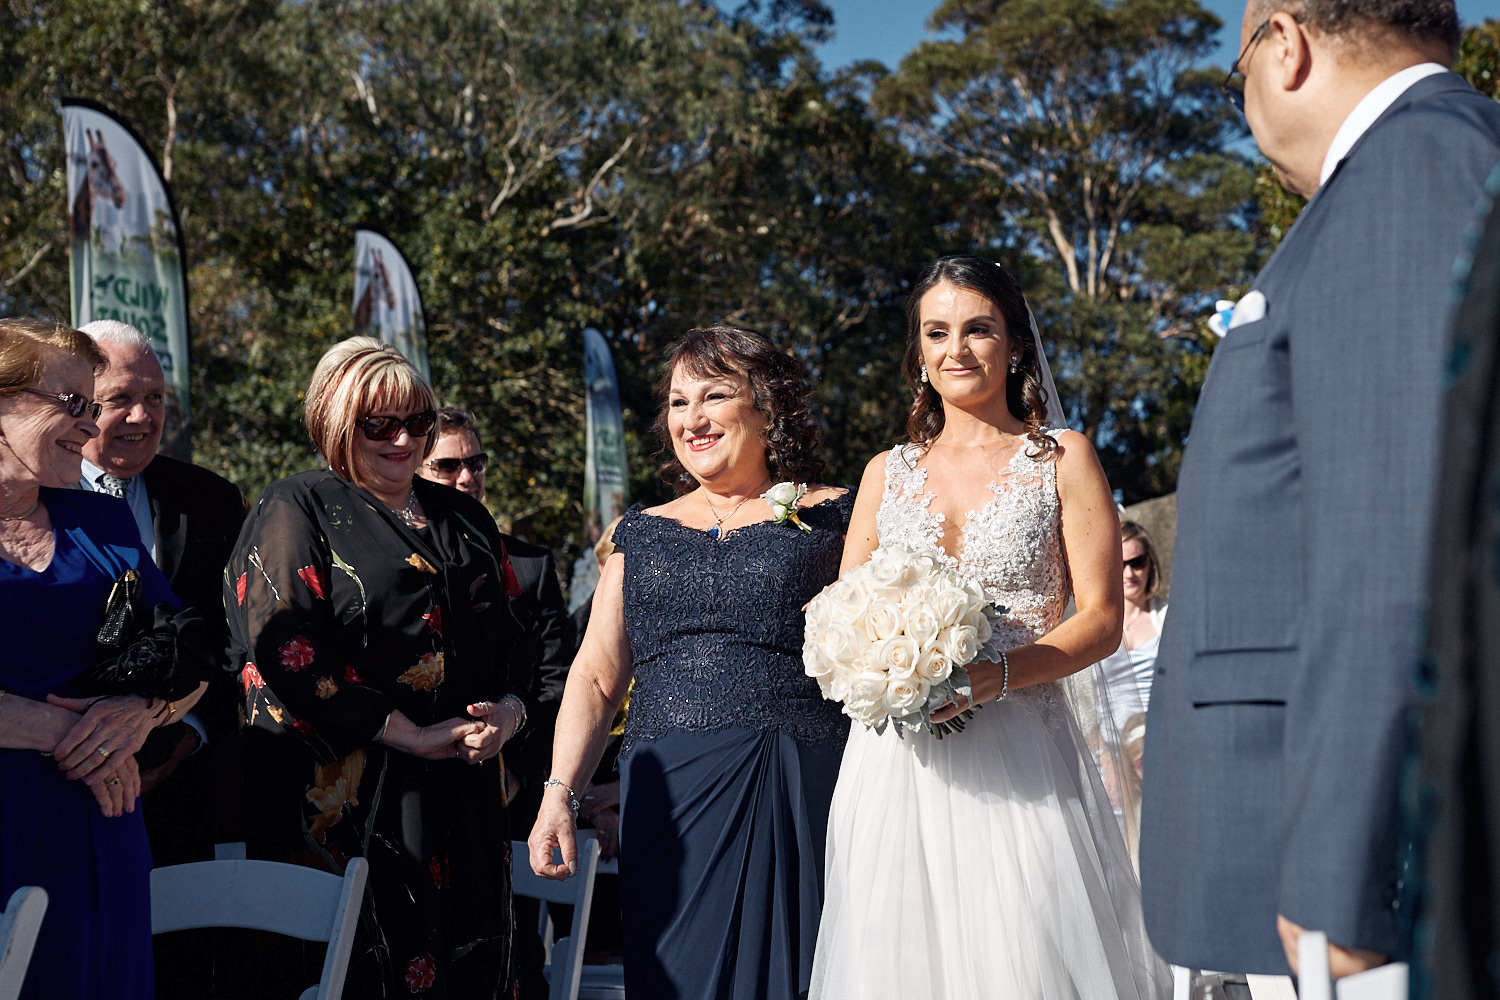 Mother walking bride down the aisle on the Centenary Theatre terrace at Taronga Zoo by Blue Mountains wedding photographer Joshua Witheford